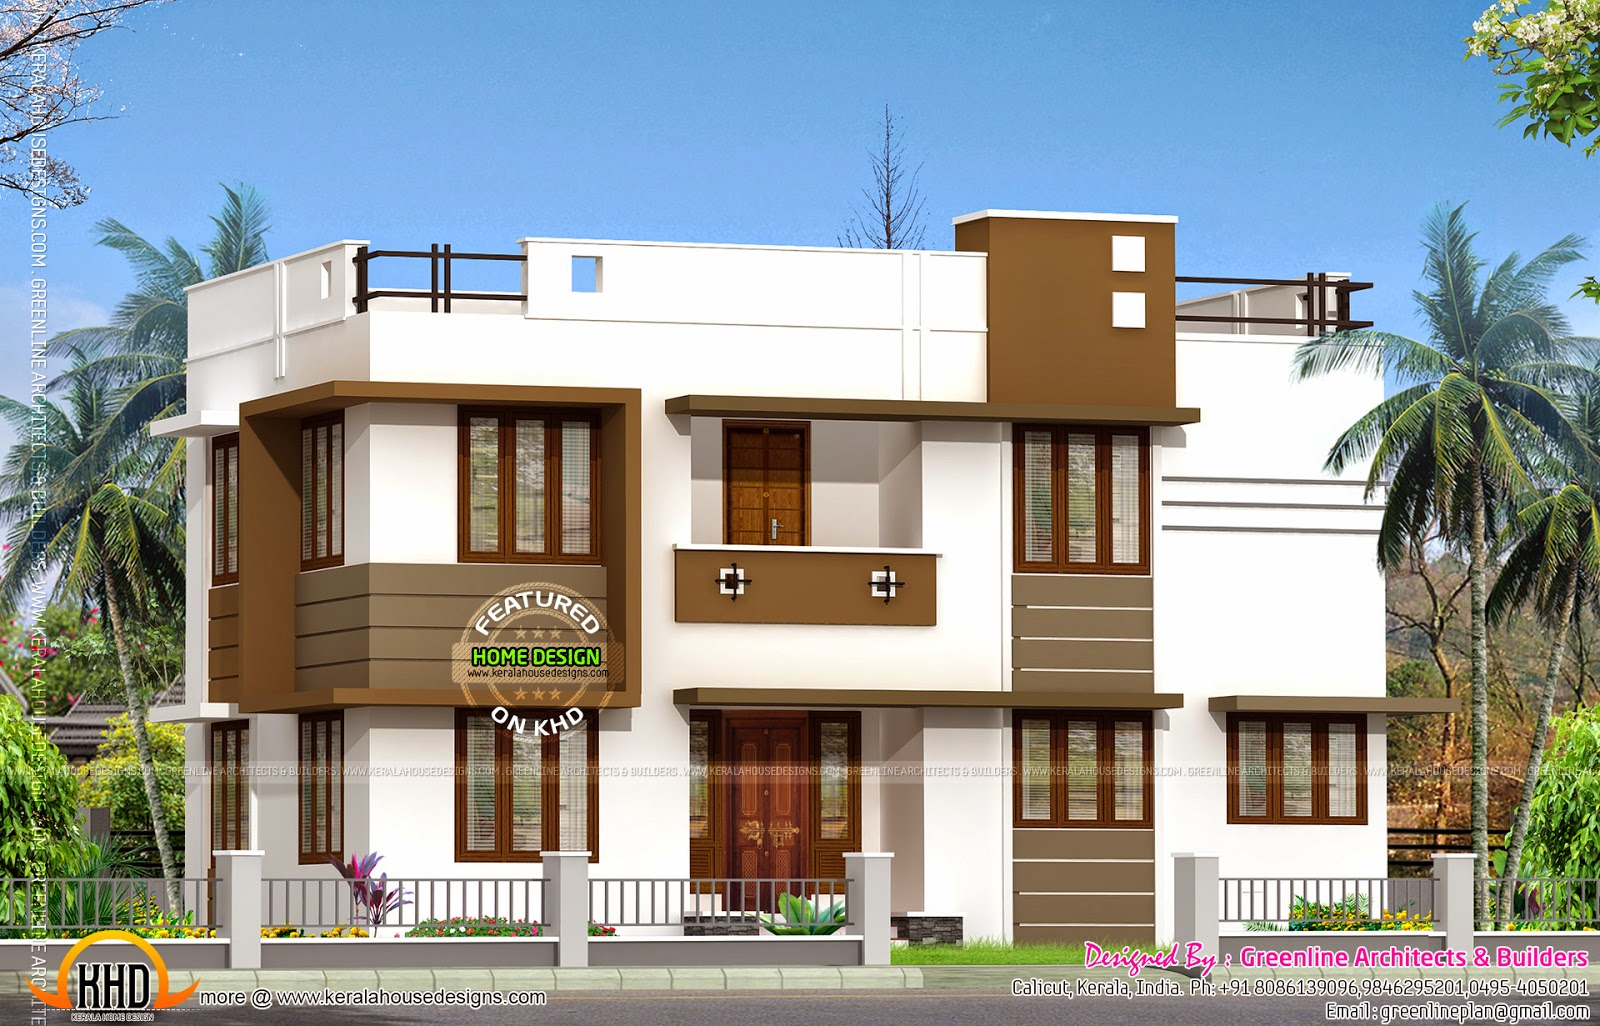 August 2014 kerala home design and floor plans for House designs kerala style low cost